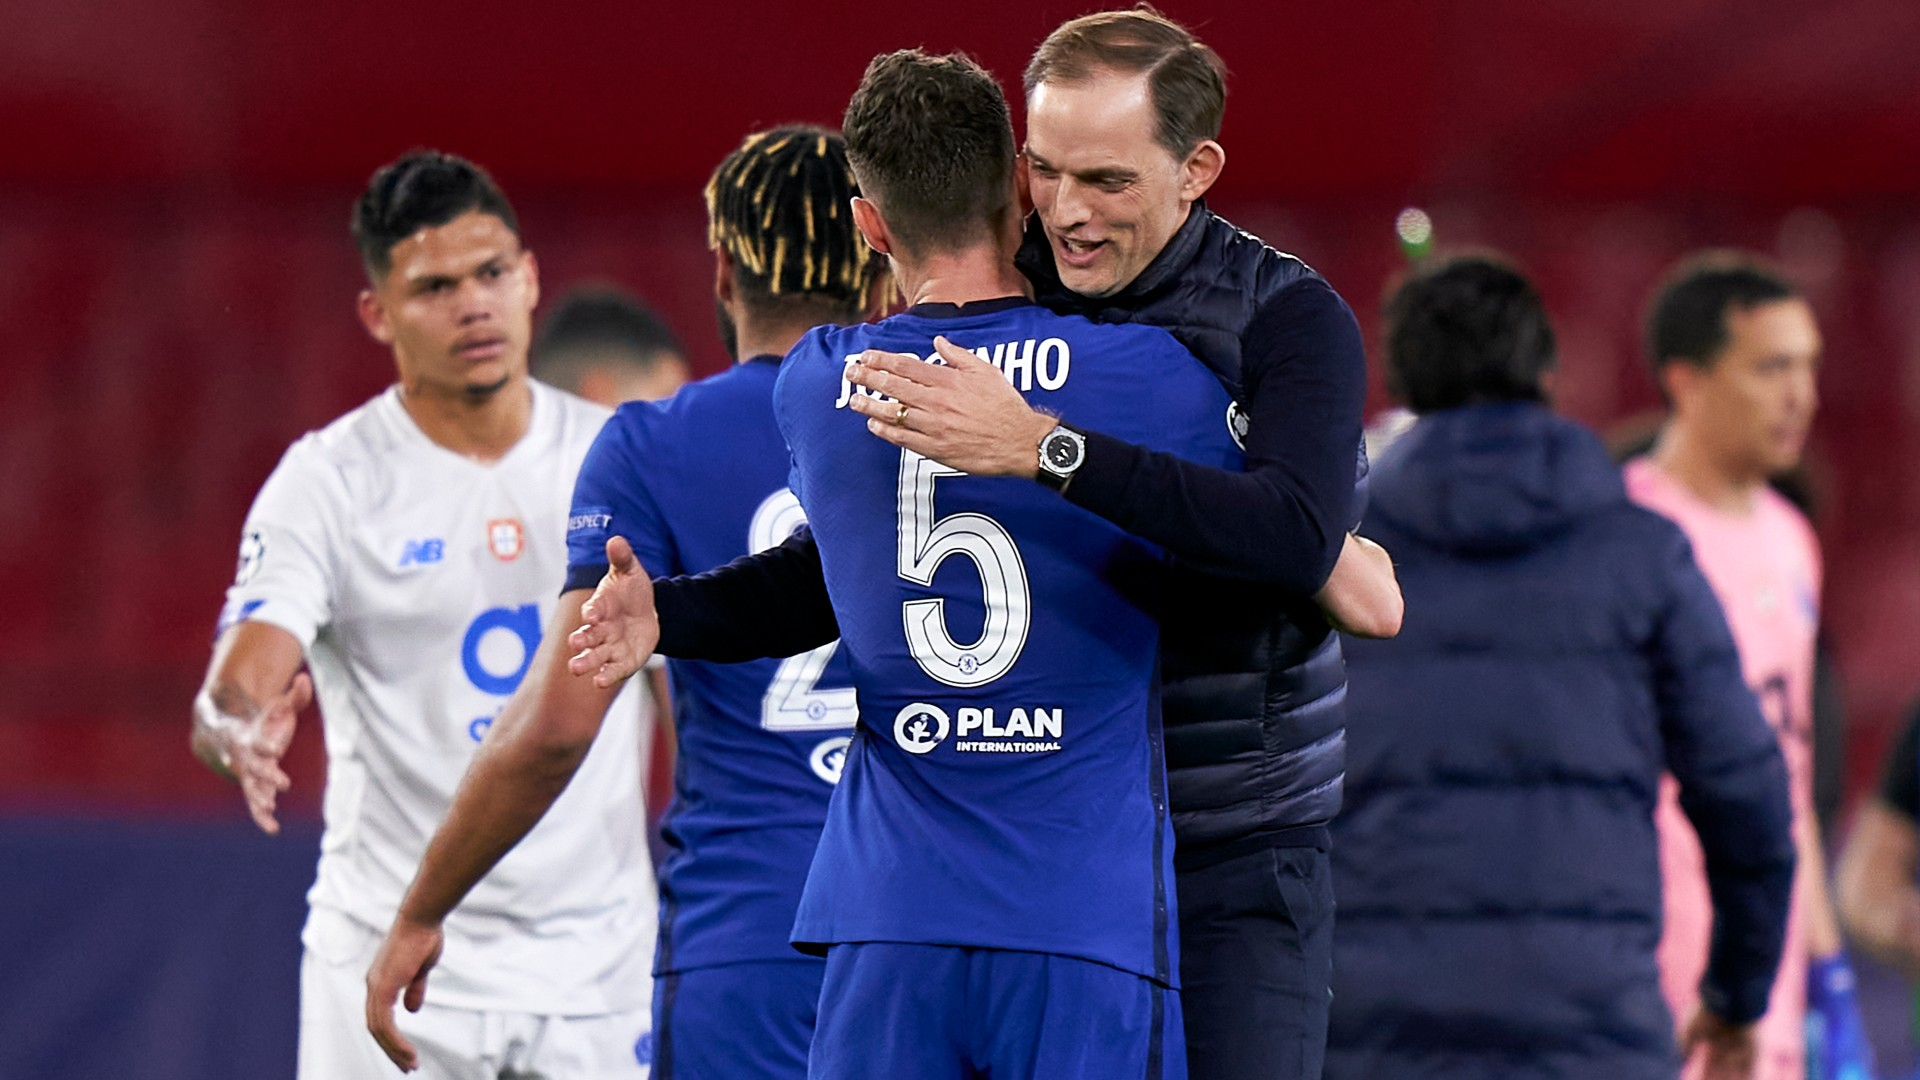 Chelsea boss Tuchel savours semi-final progress after 'tough, tough fight' against Porto